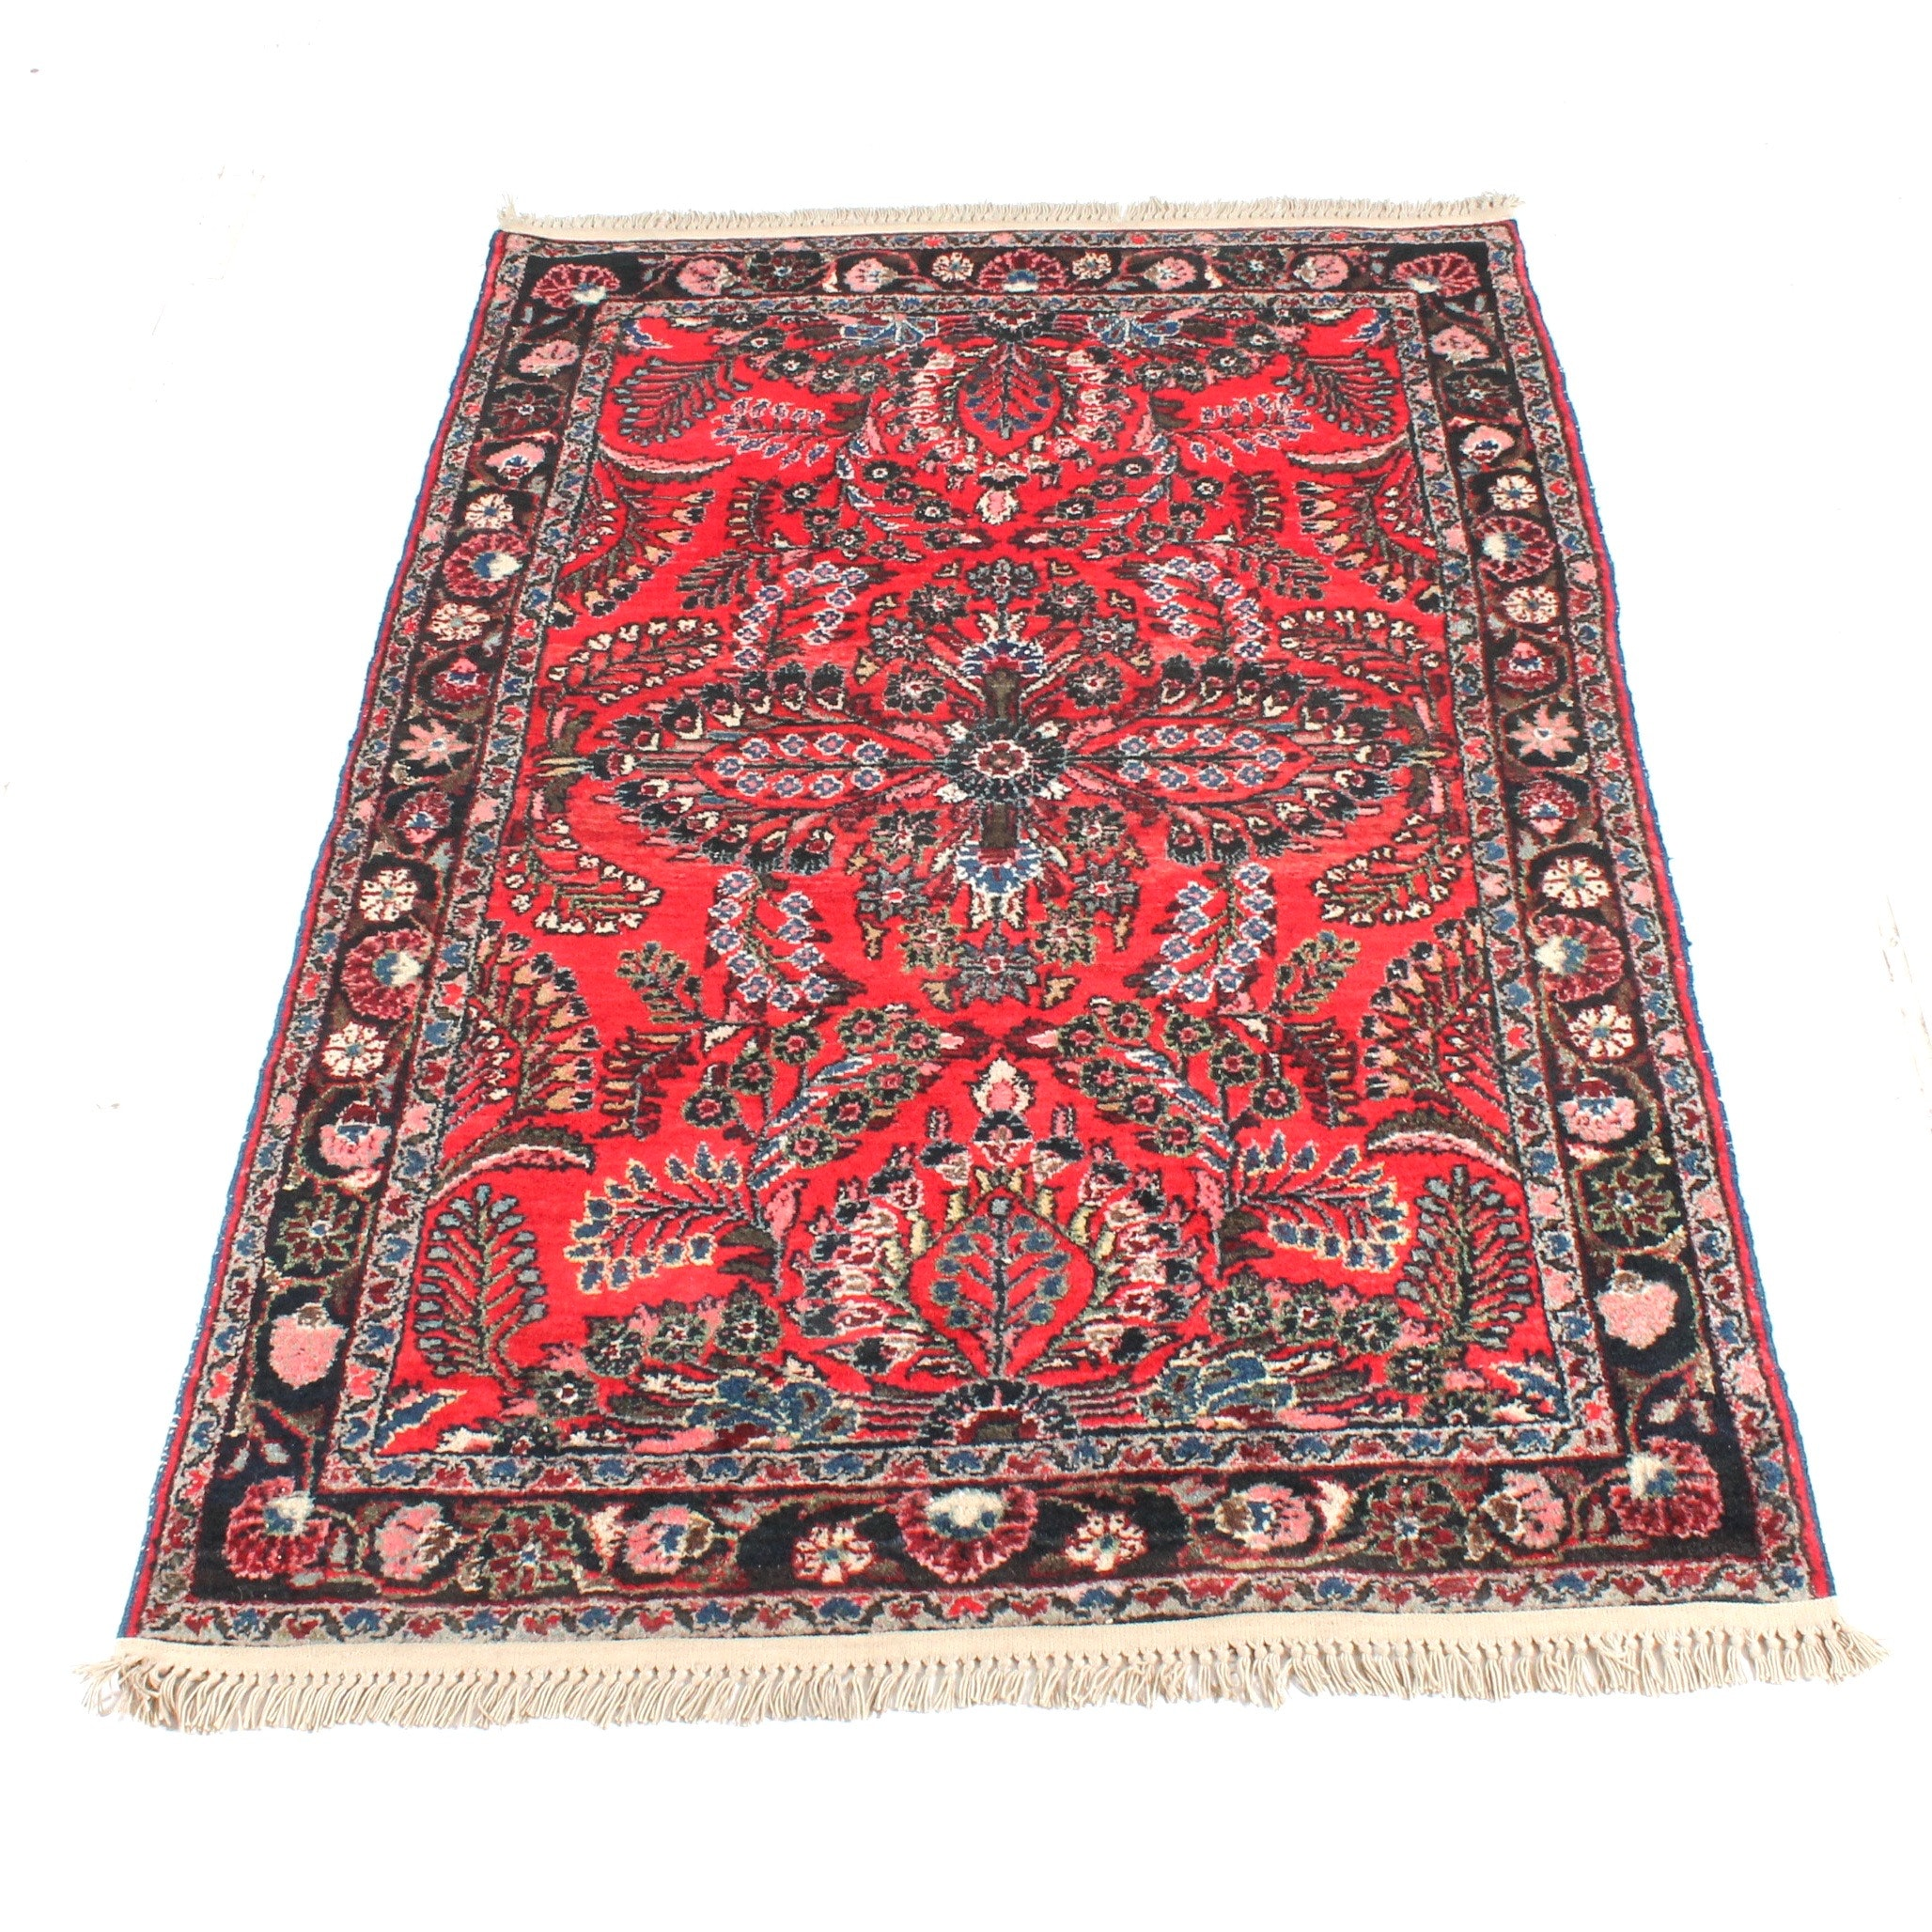 Antique Hand-Knotted Persian Daragazine Rug